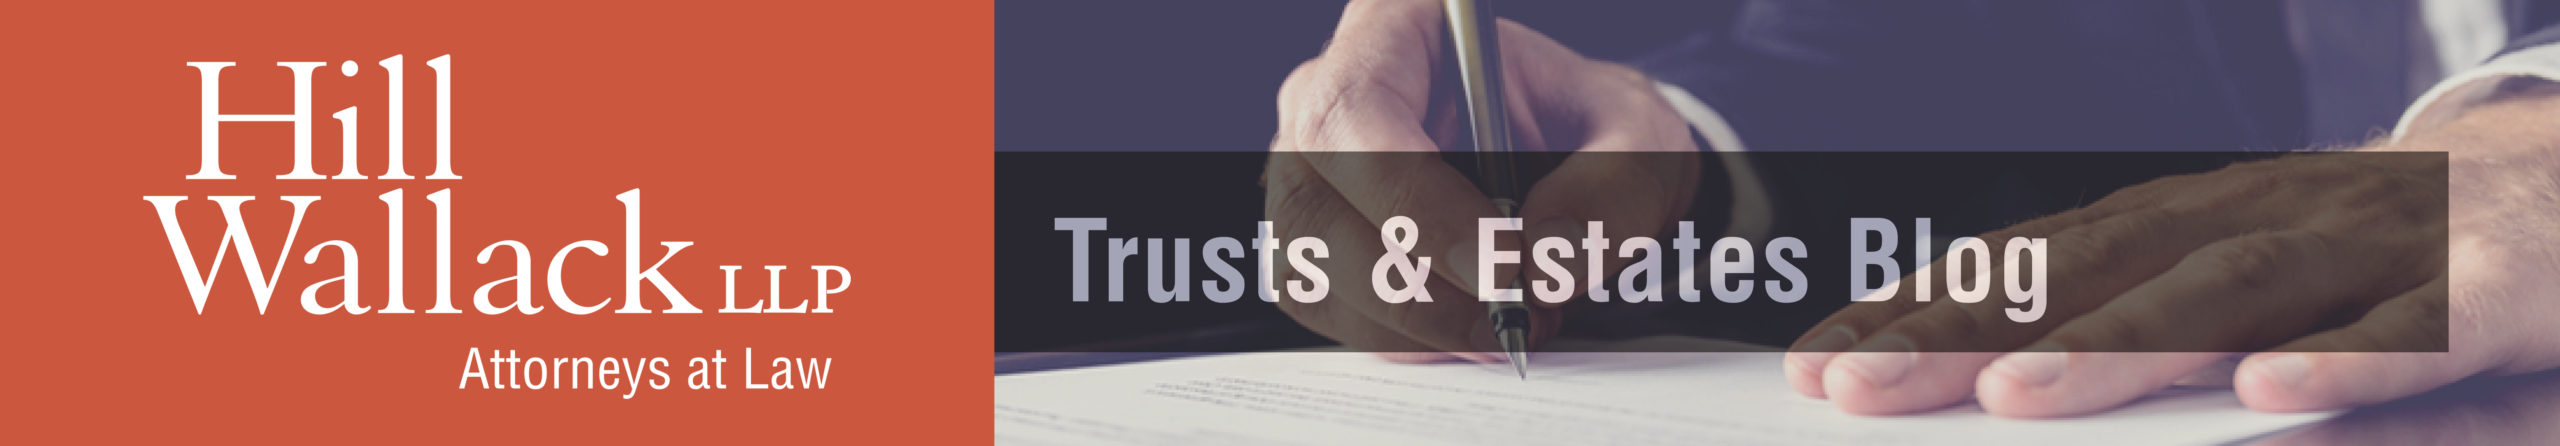 Hill Wallack LLP Trusts and Estates Blog